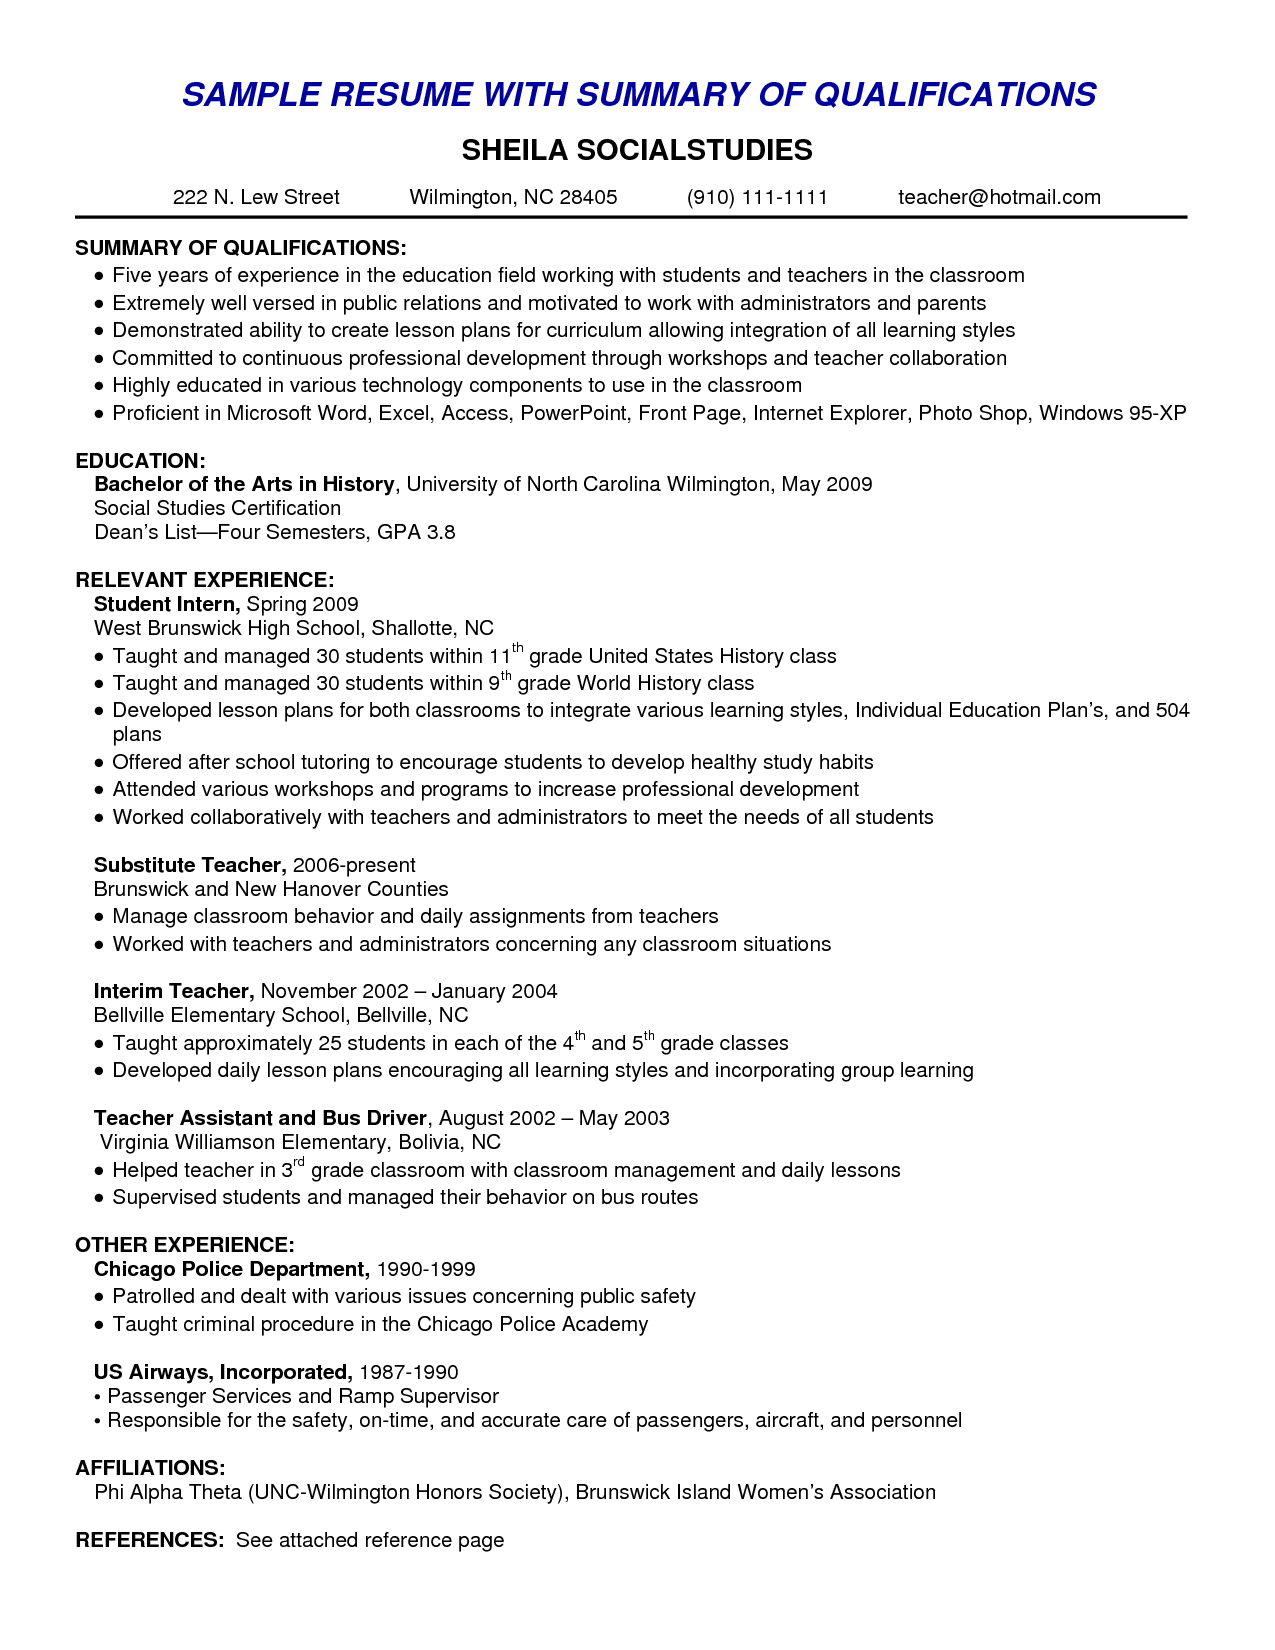 An Ultius crafted resume